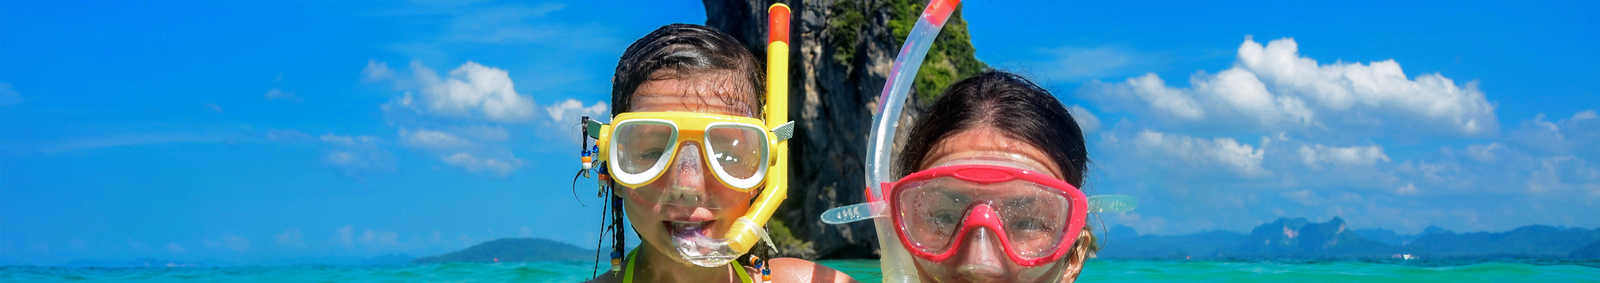 Family snorkeling, Thailand